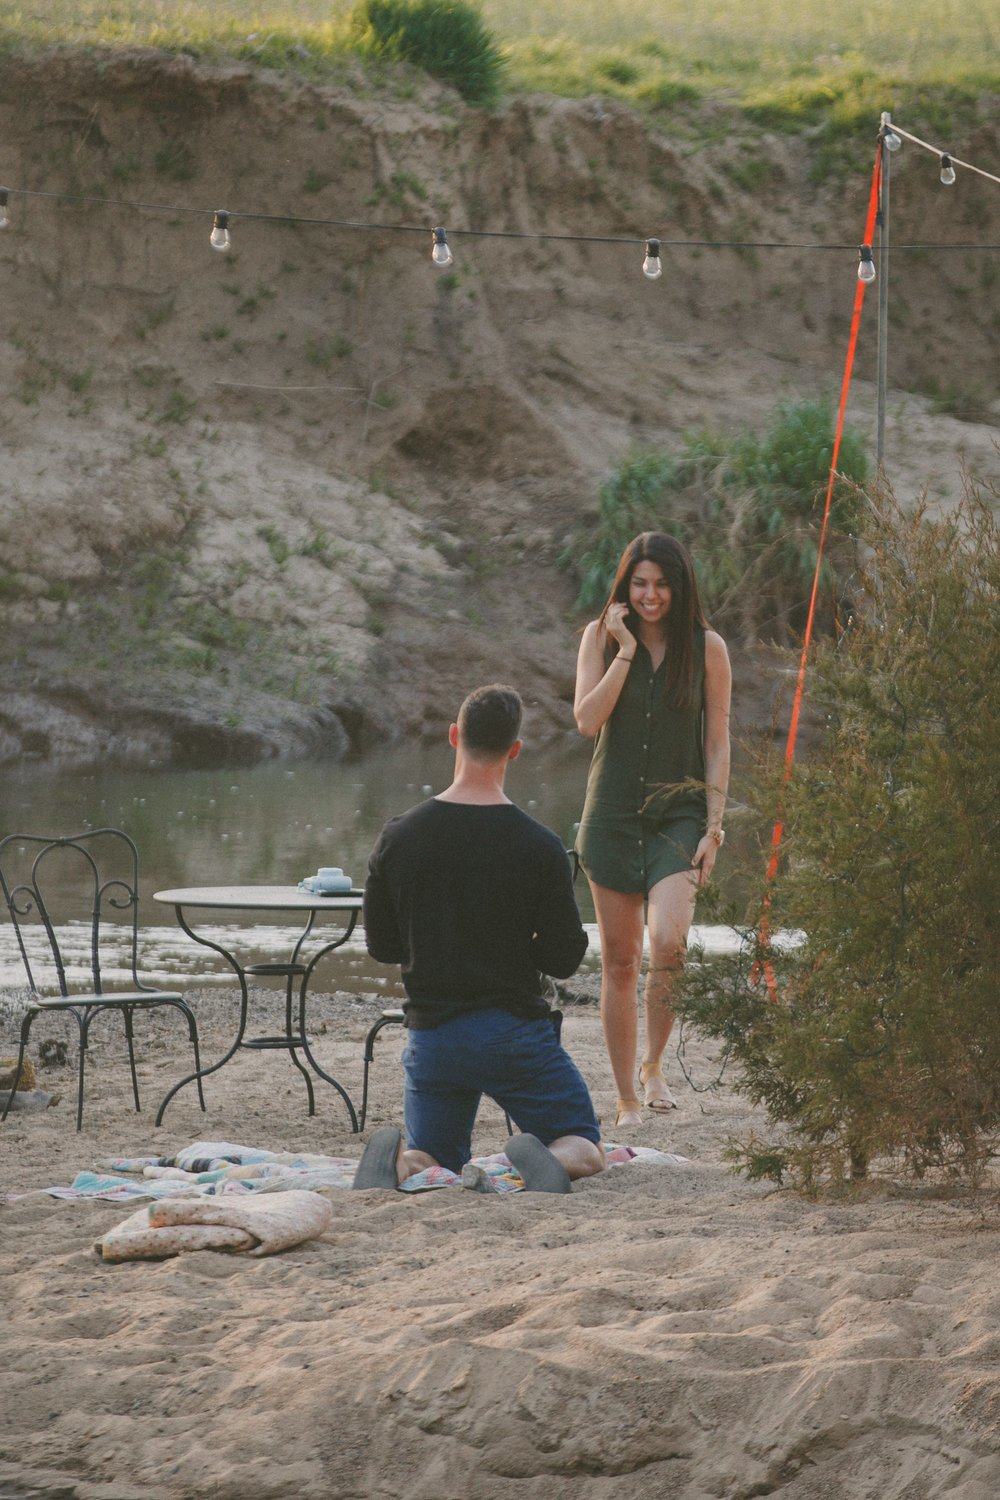 champaign_il_engagement_photography-0003